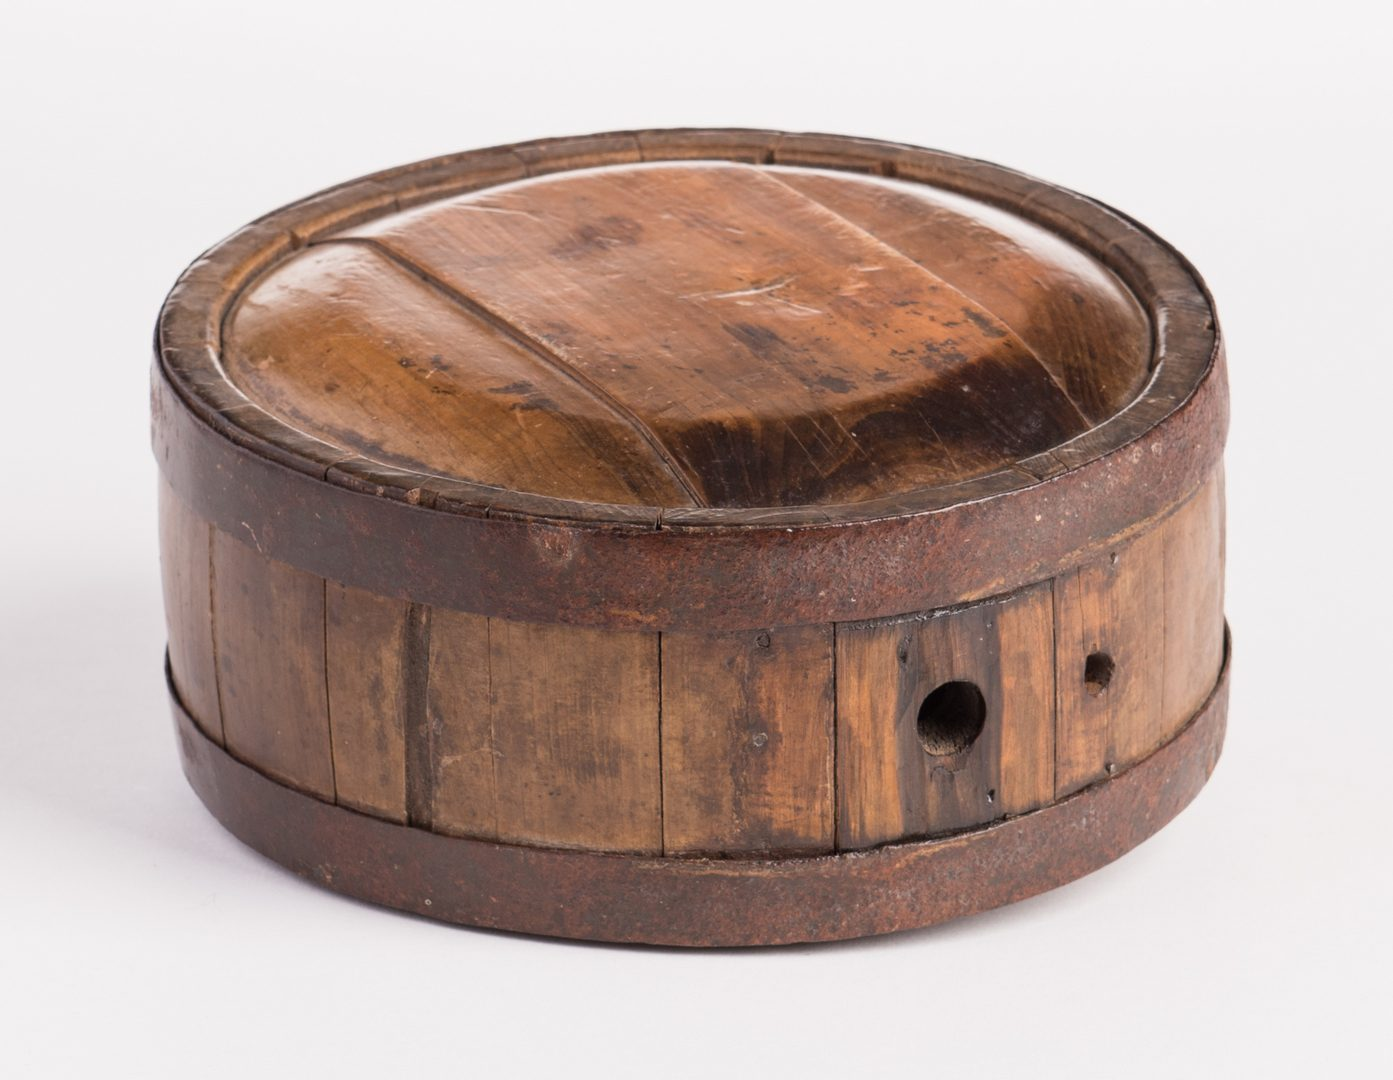 Lot 173: American Canteen, 19th Cent.